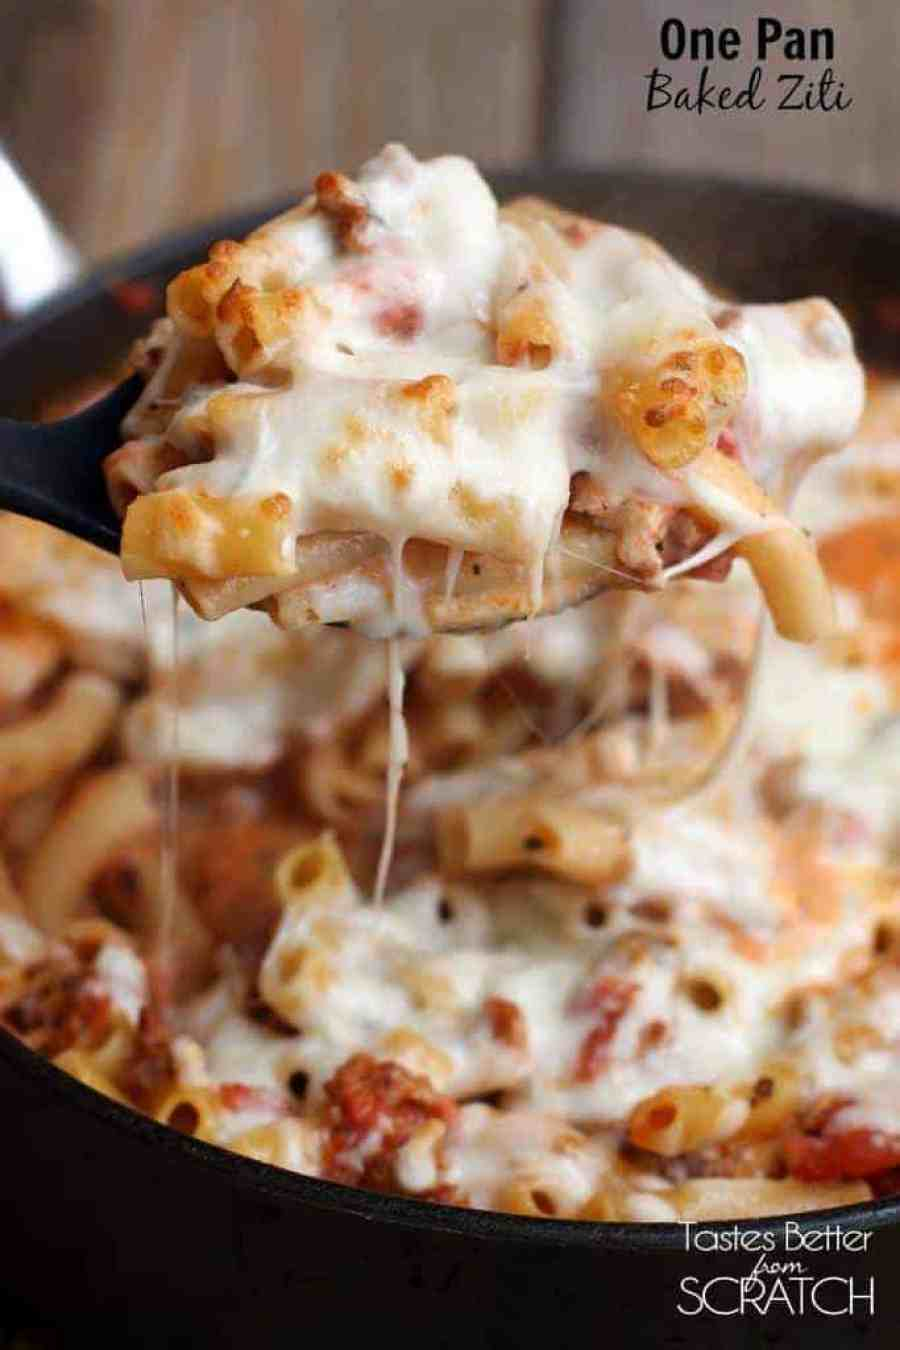 One Pan Baked Ziti Tastes Better From Scratch